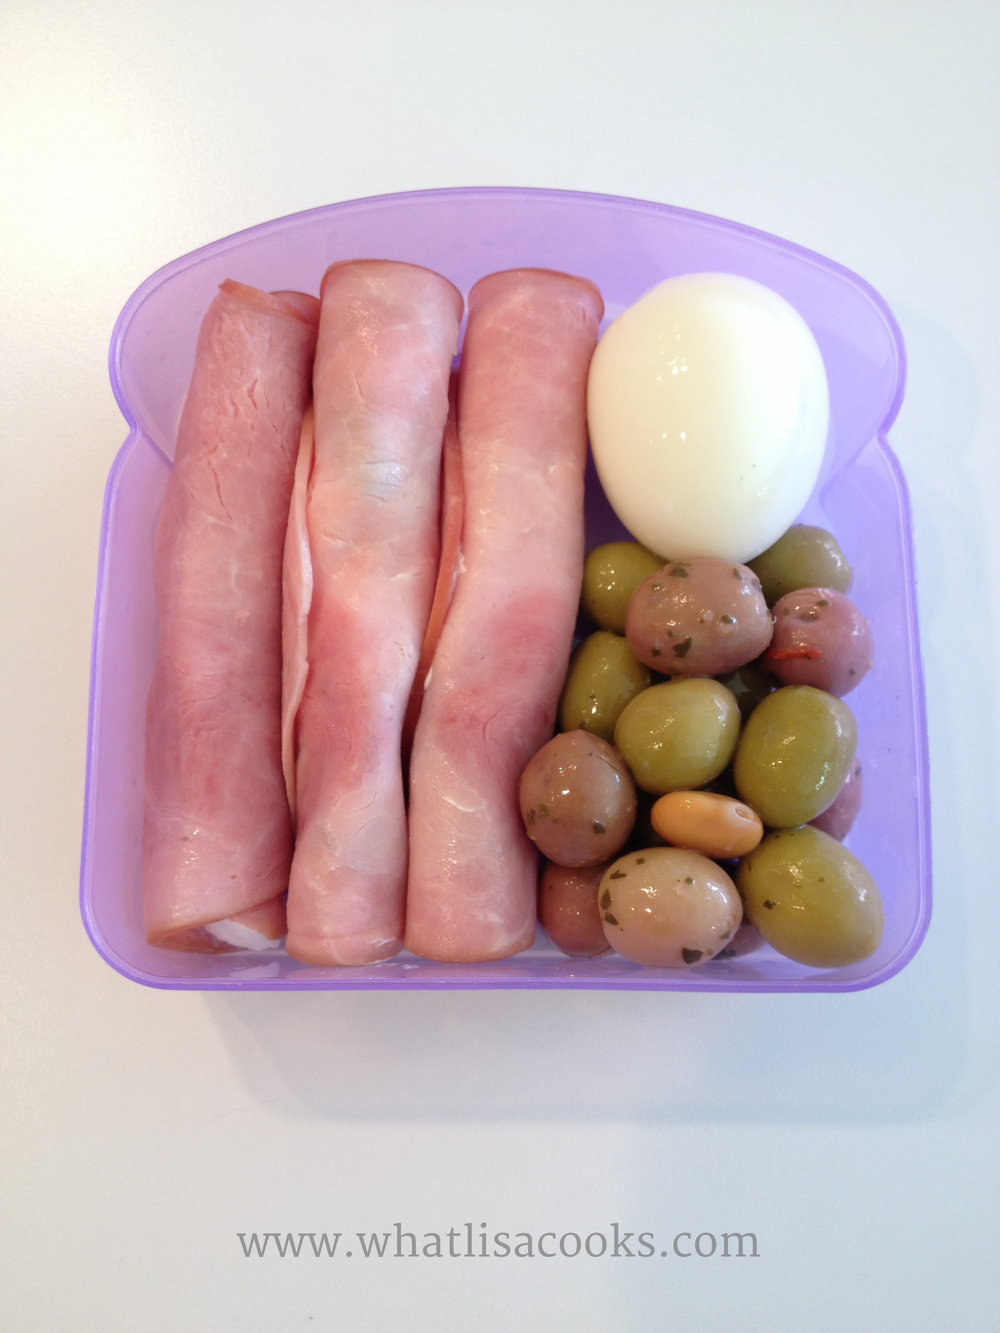 Little sandwich boxes are the perfect size for a small meal.  This was a protein packed, low carb, power lunch.  Slices of ham spread with cheese and rolled around a pickled asparagus, with boiled egg, marinated olives.